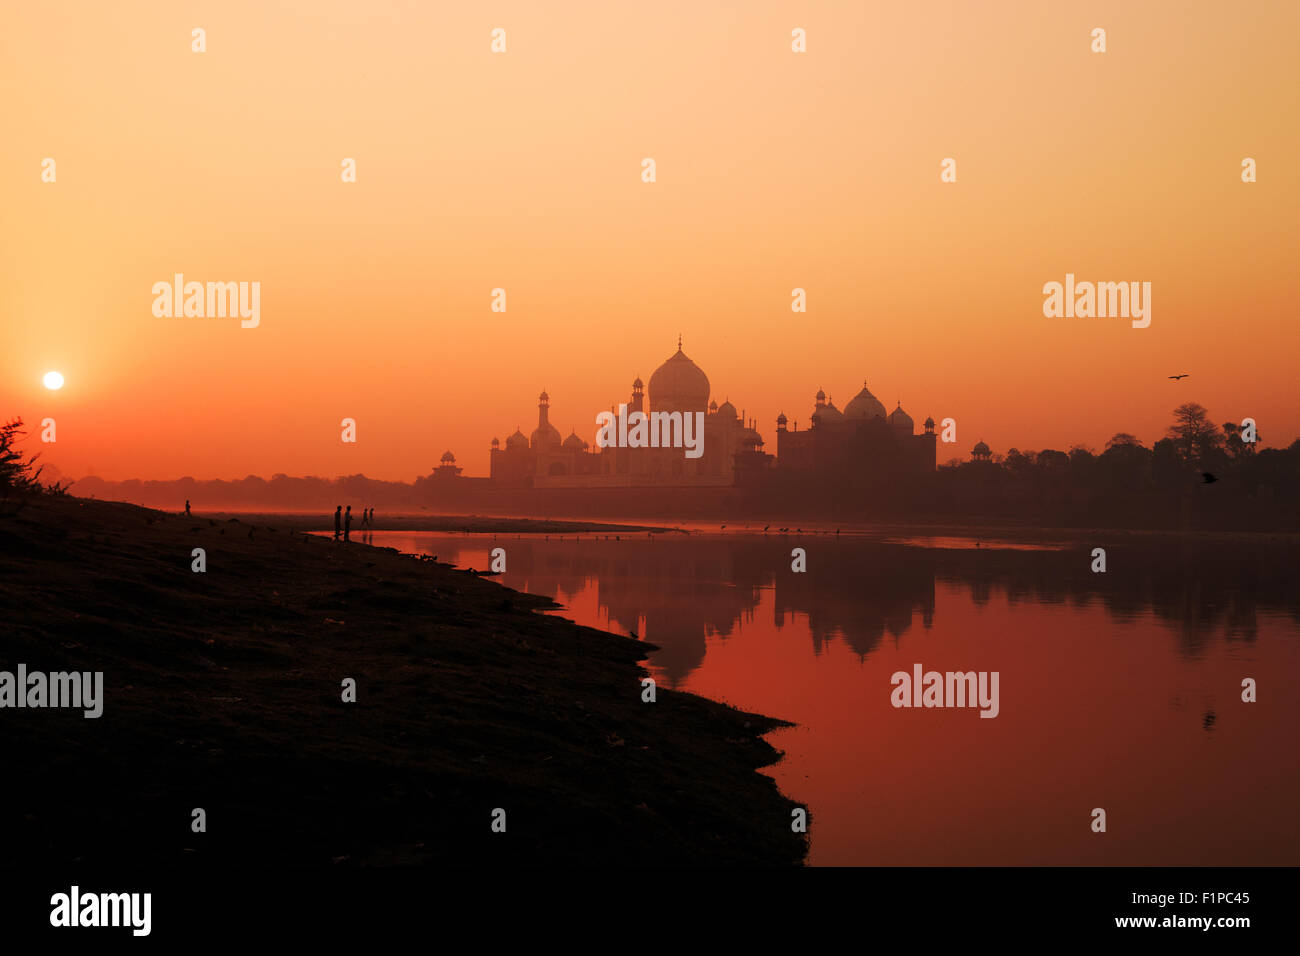 Un sunrise vista del Taj Mahal di Agra, India. Immagini Stock